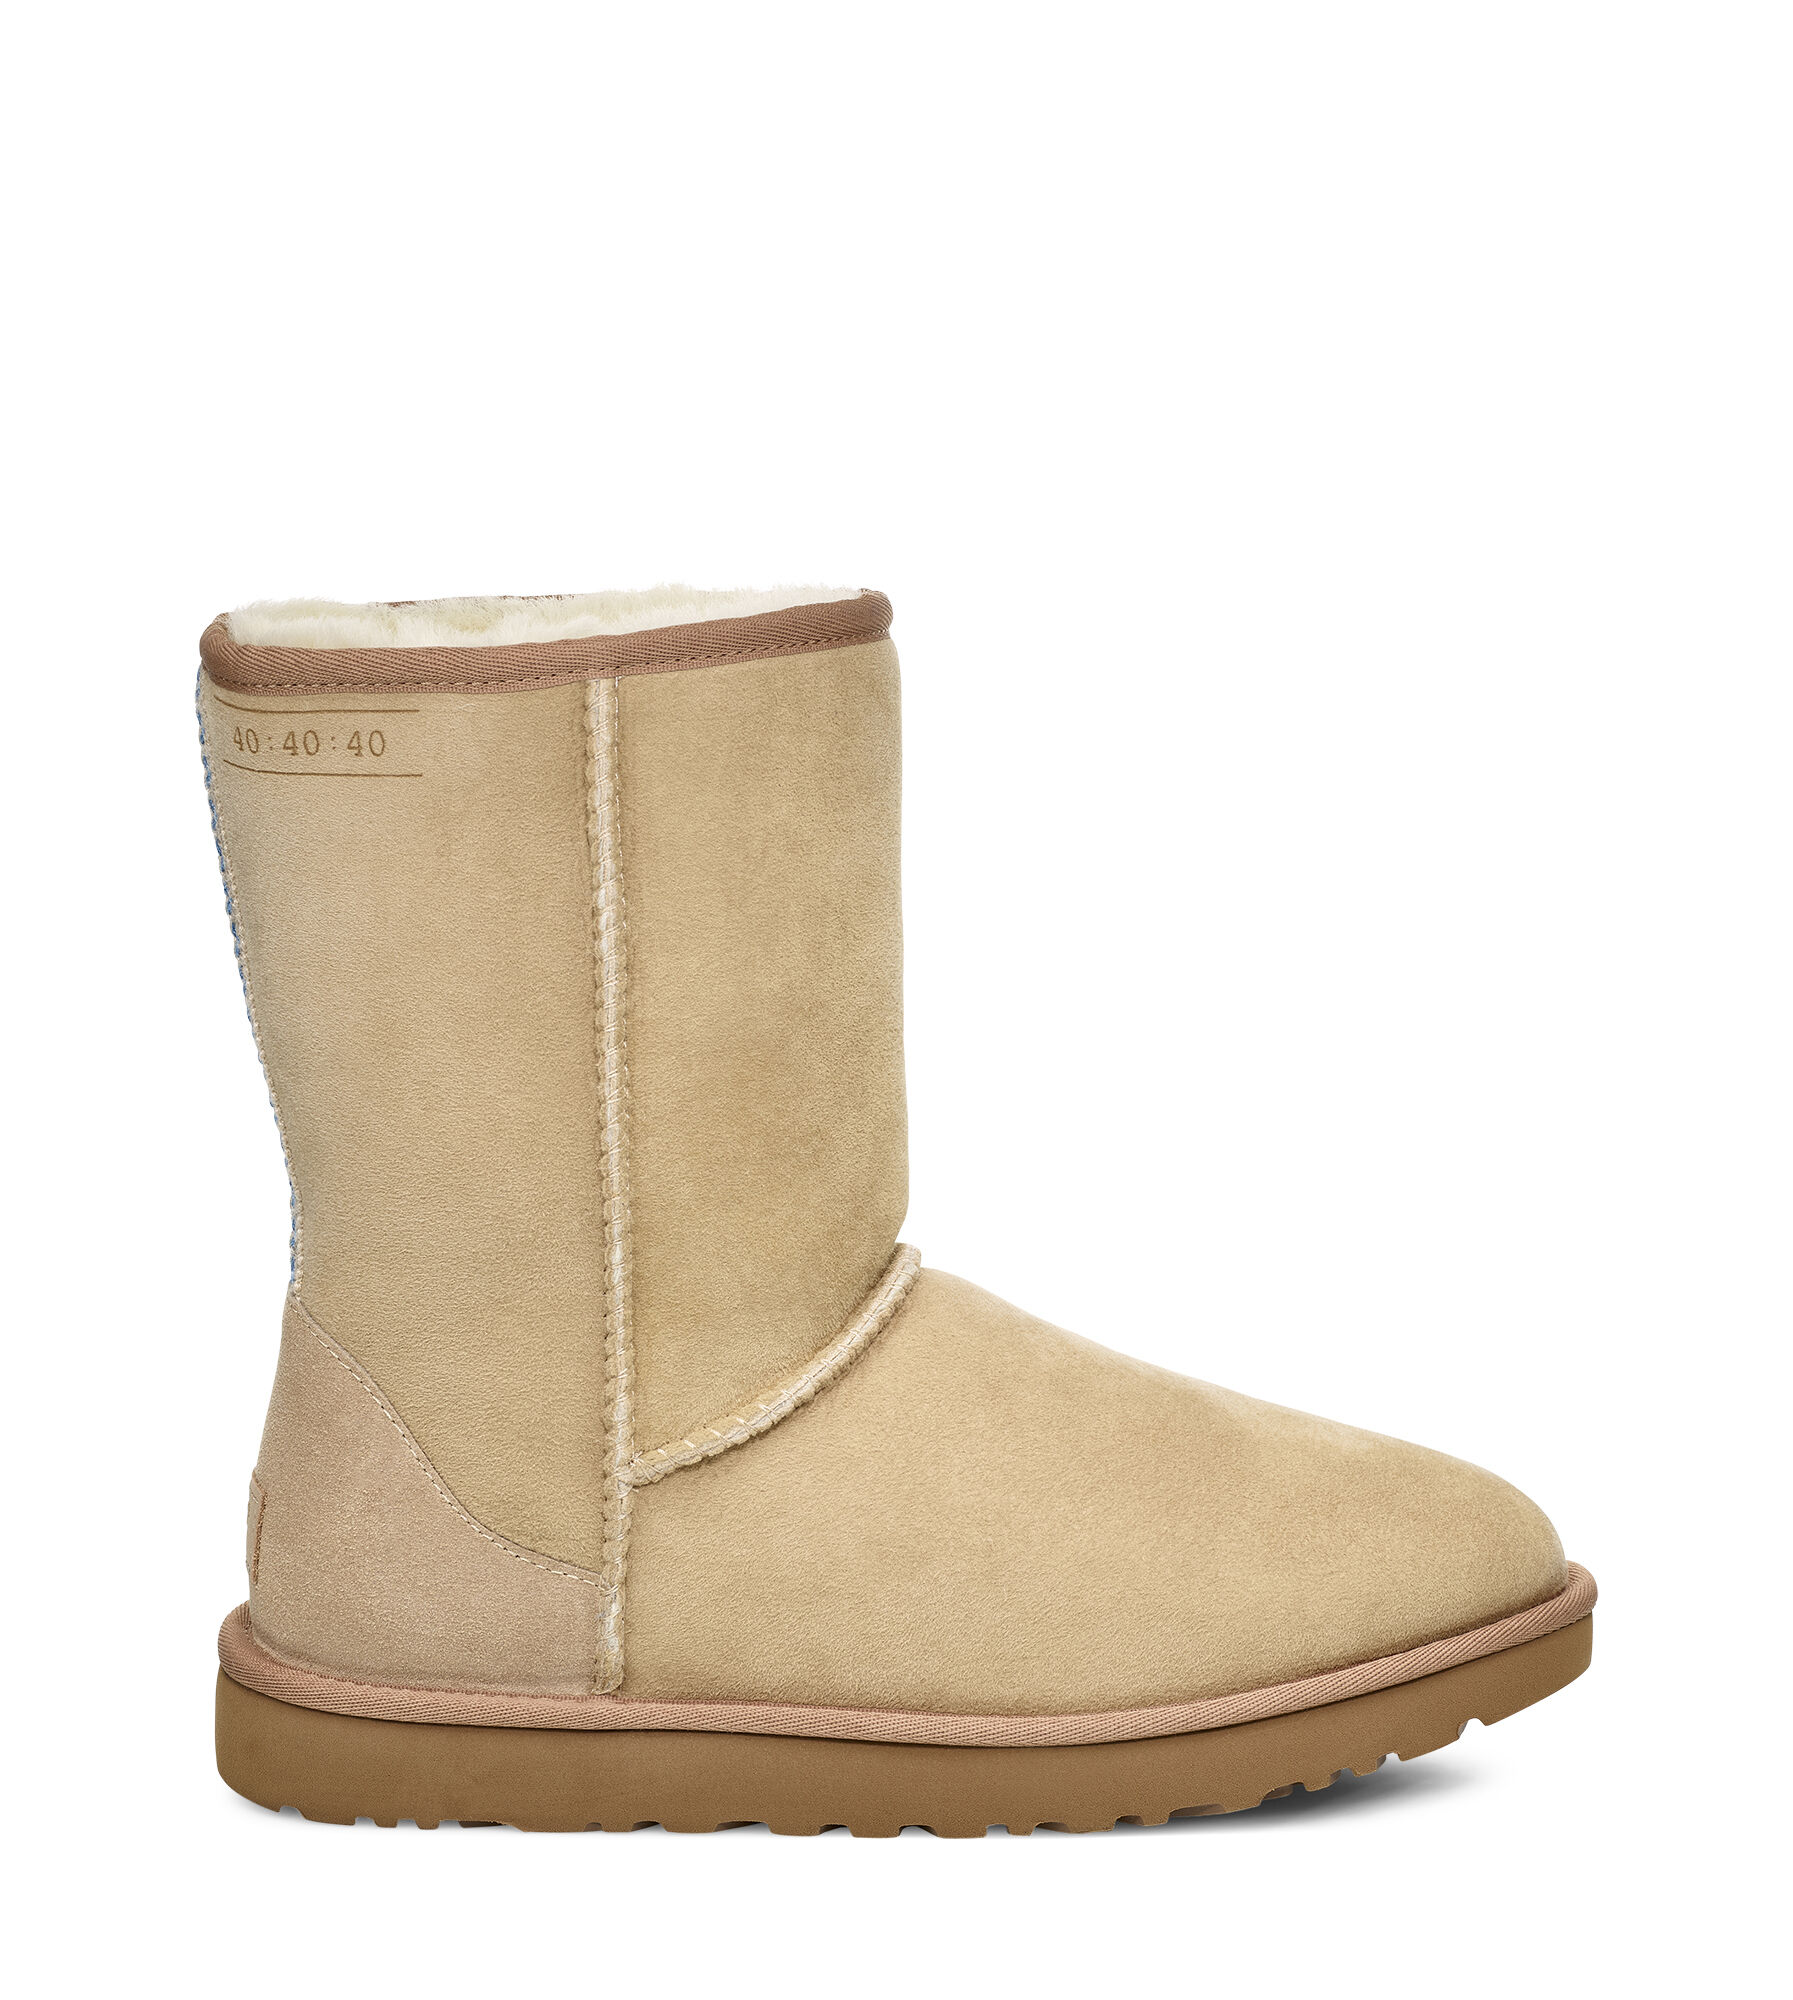 authorized ugg dealers canada